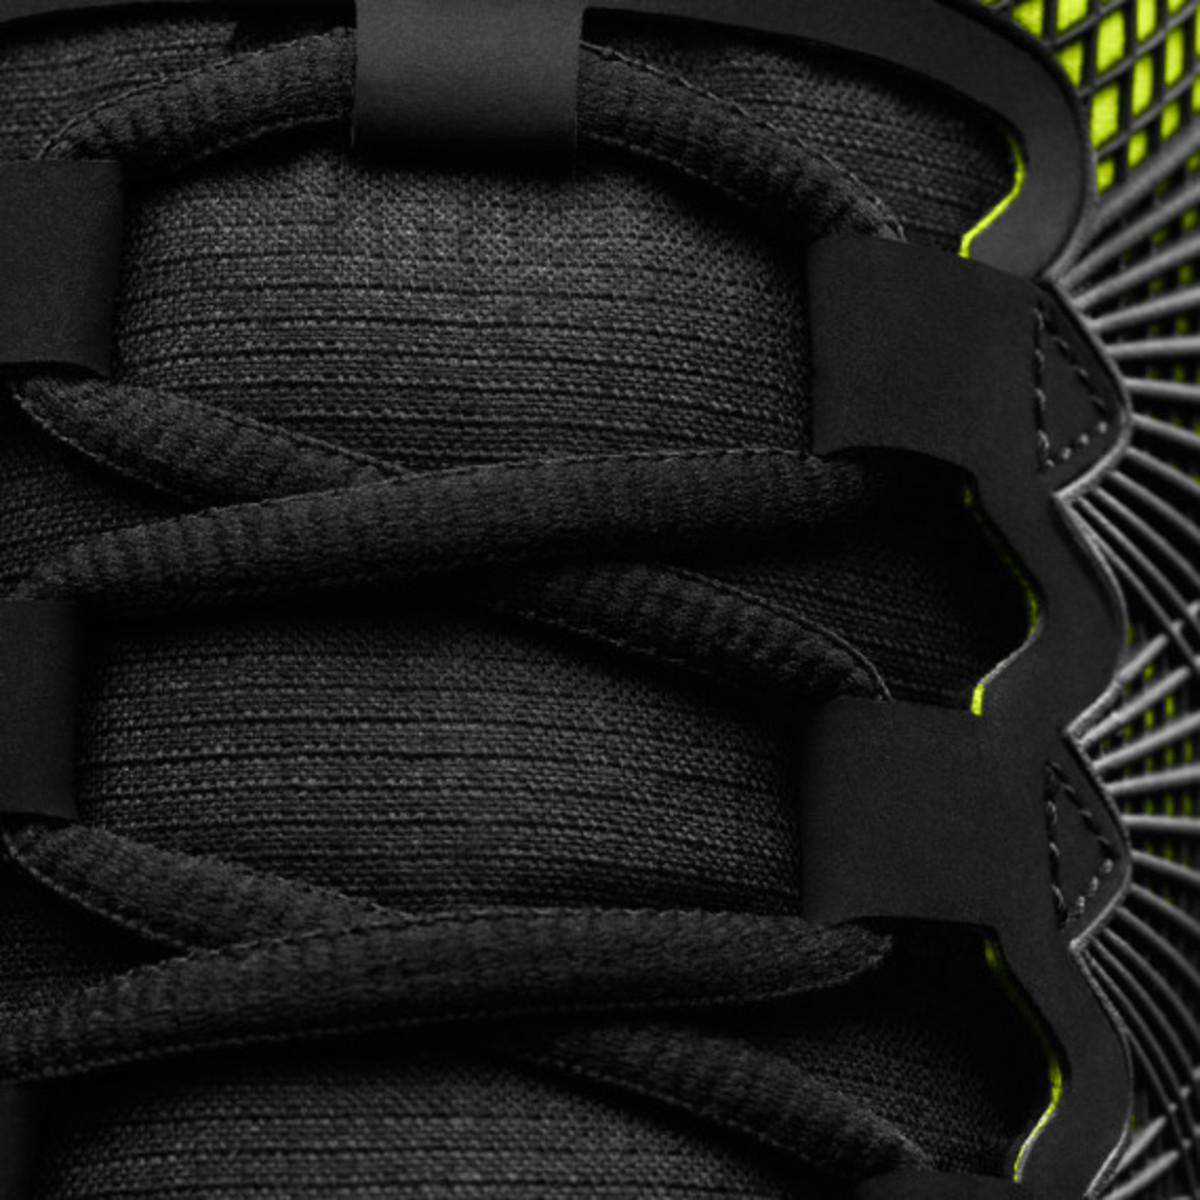 Nike Free Trainer 3.0 Mid Shield - Officially Unveiled - 9